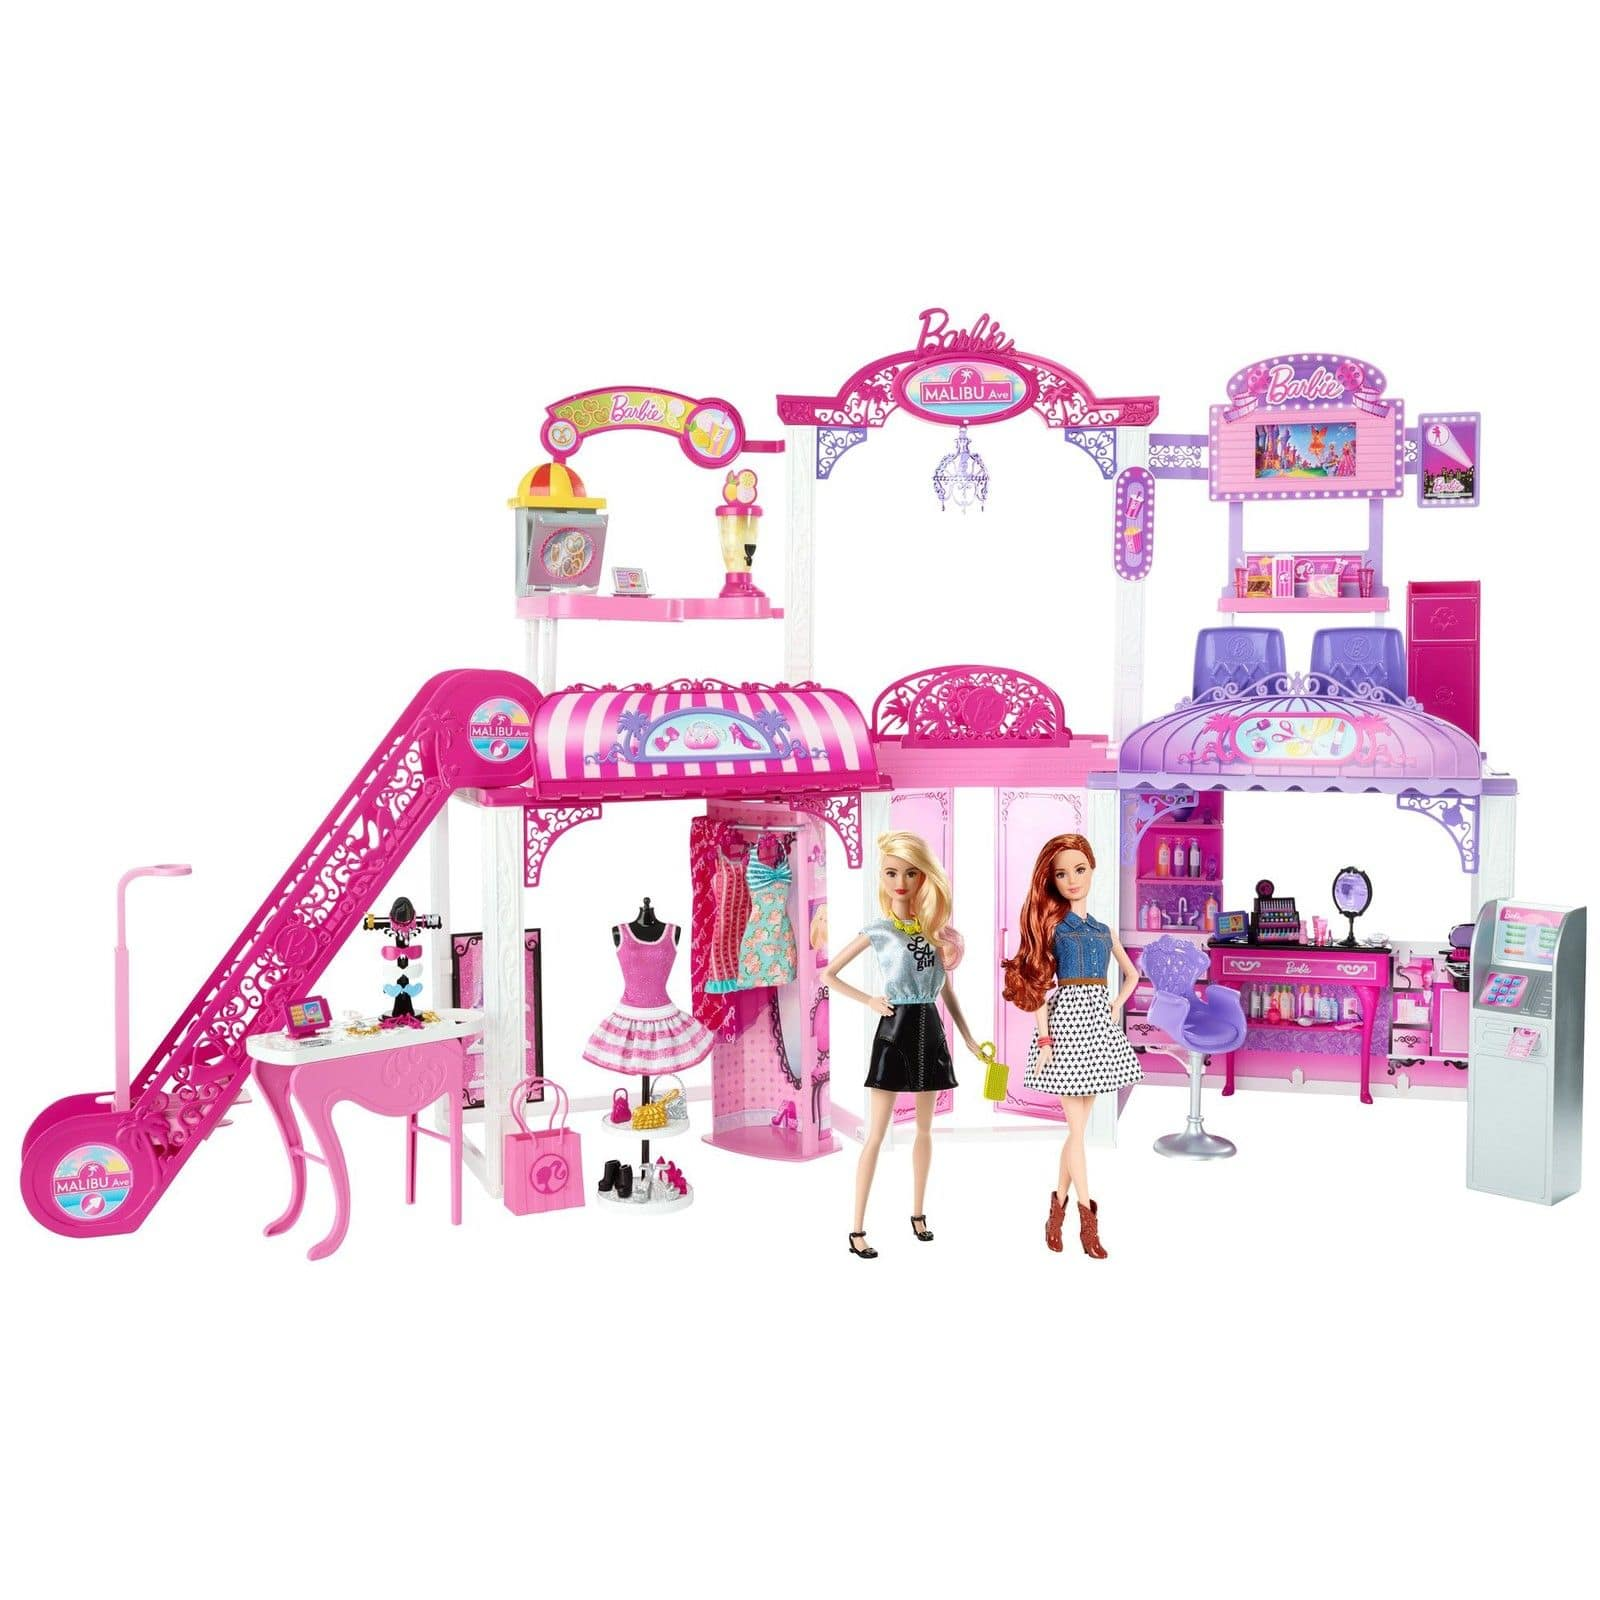 Barbie 2 Story Malibu Ave Mall Playset with 2 Extra Dolls $34.99 Free Shipping Mattel Direct on eBay